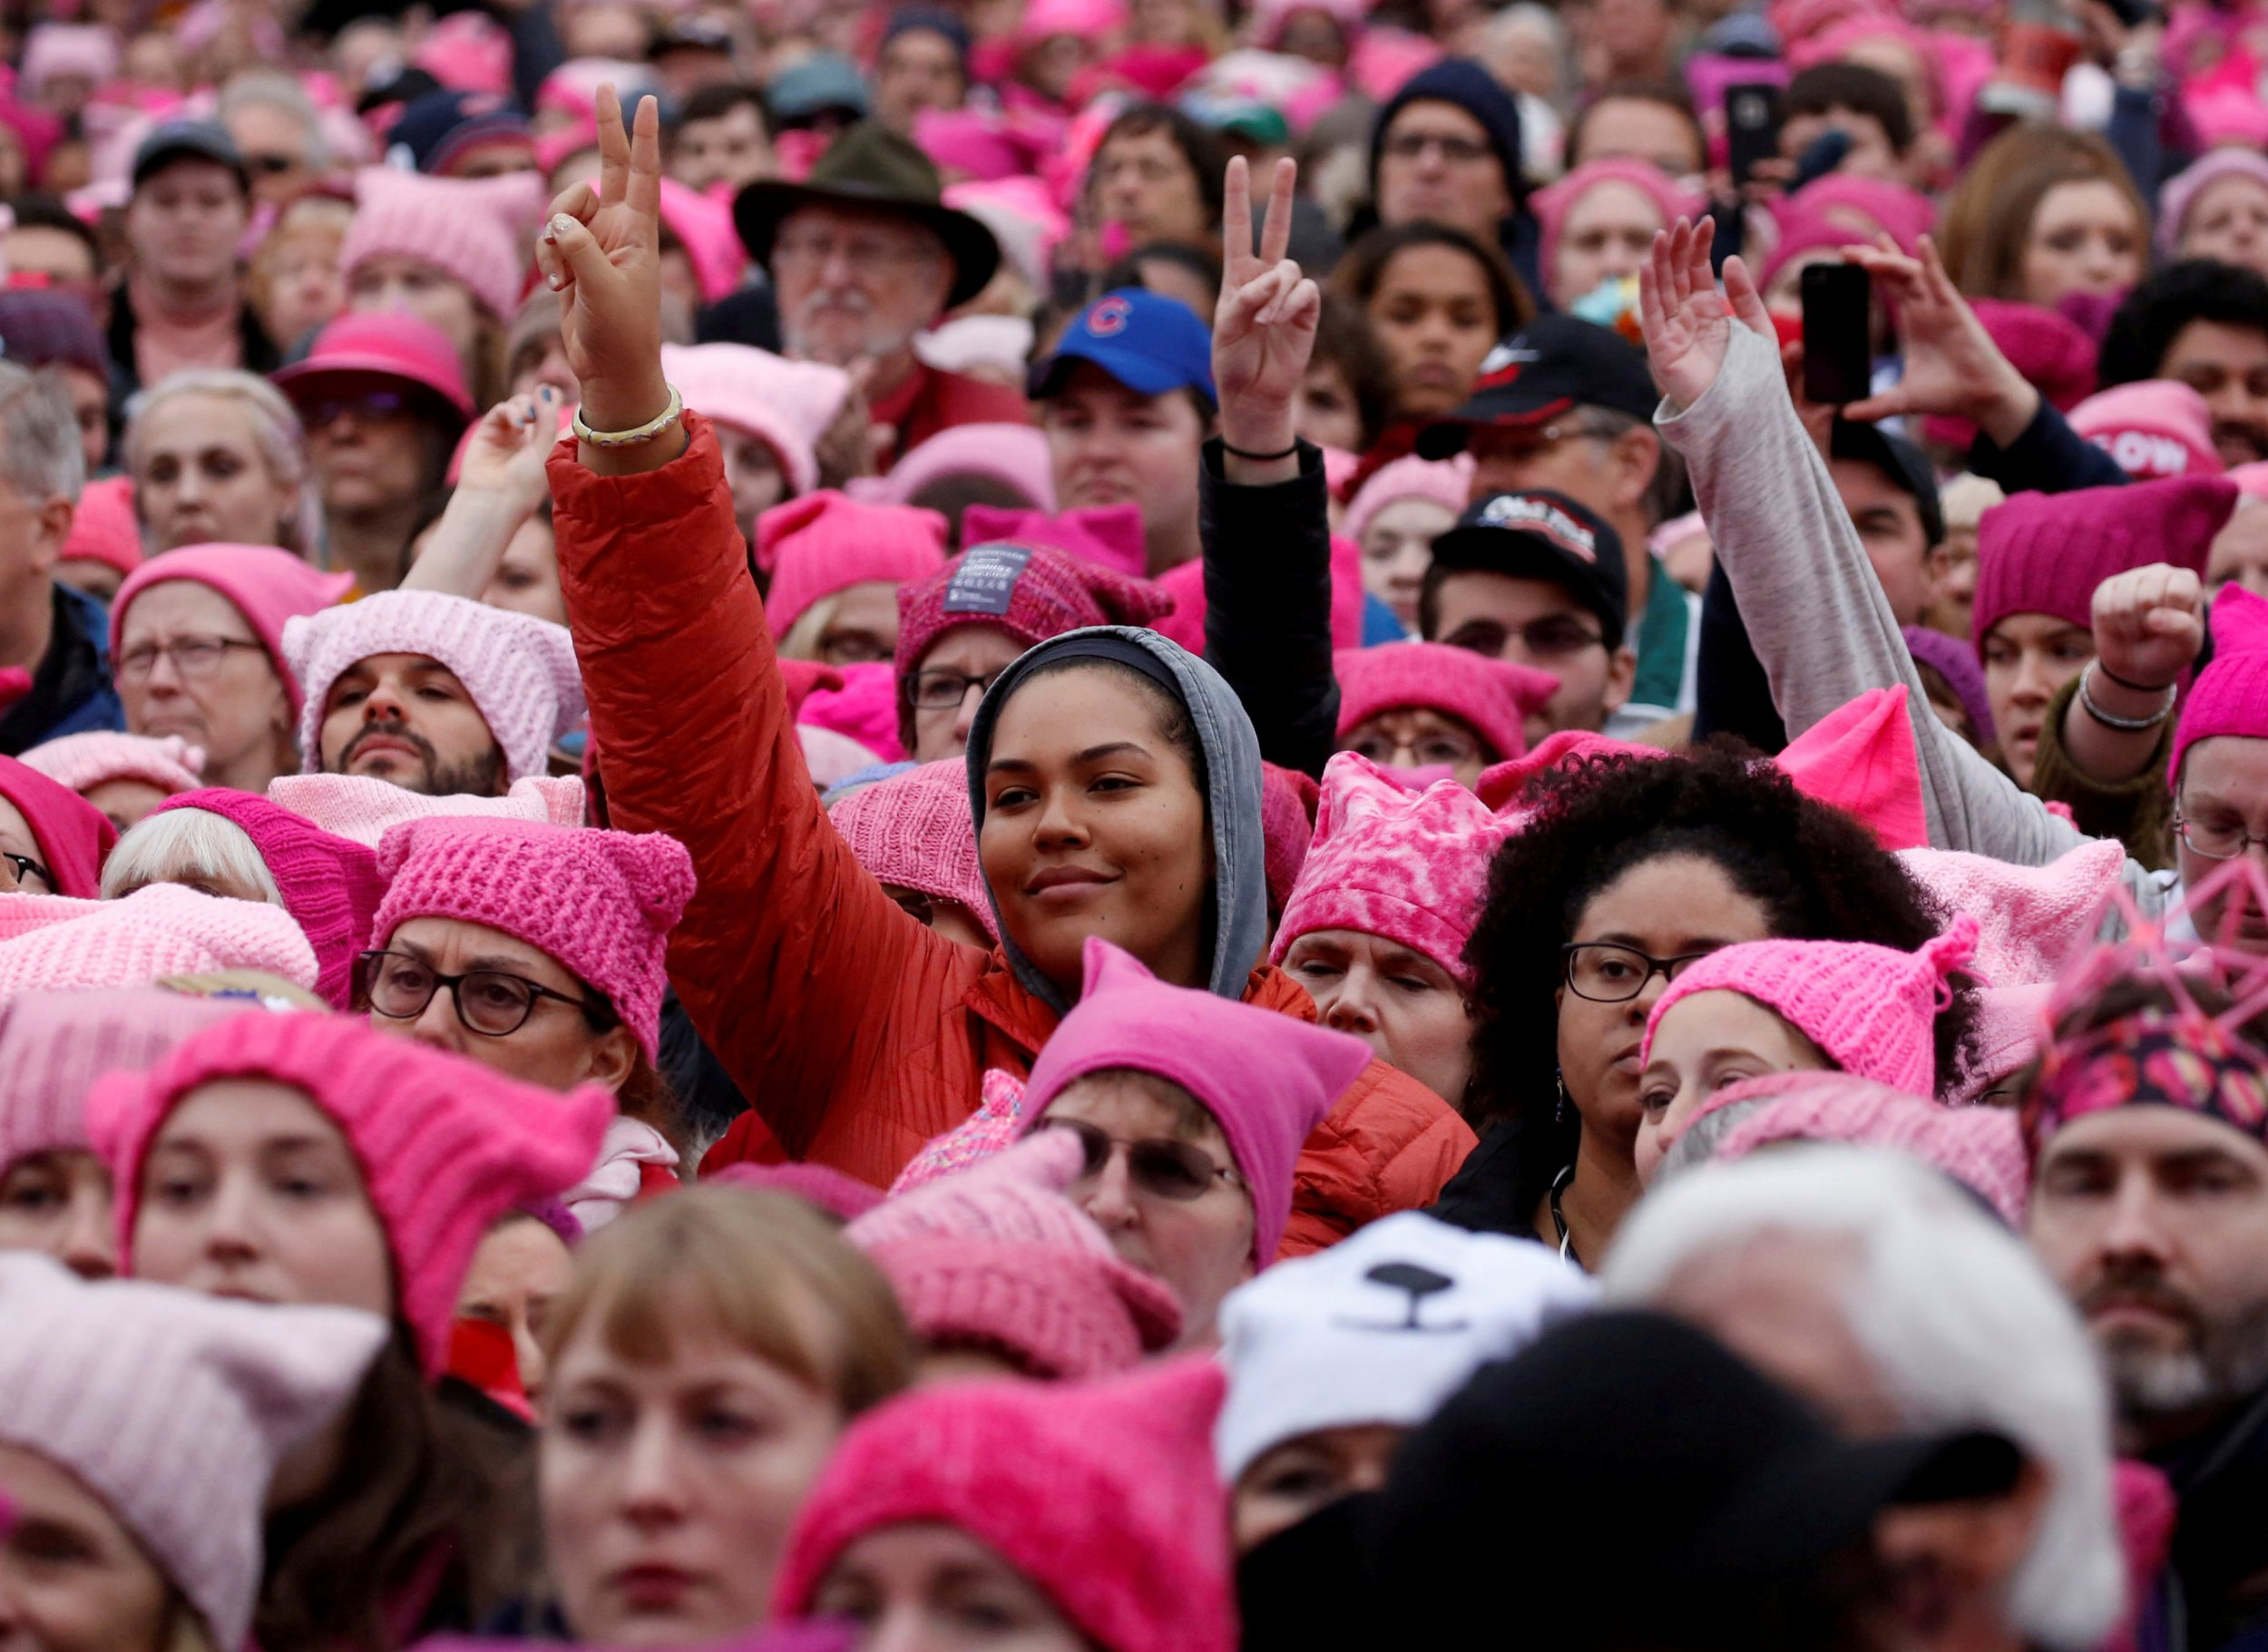 The Women's March in Washington